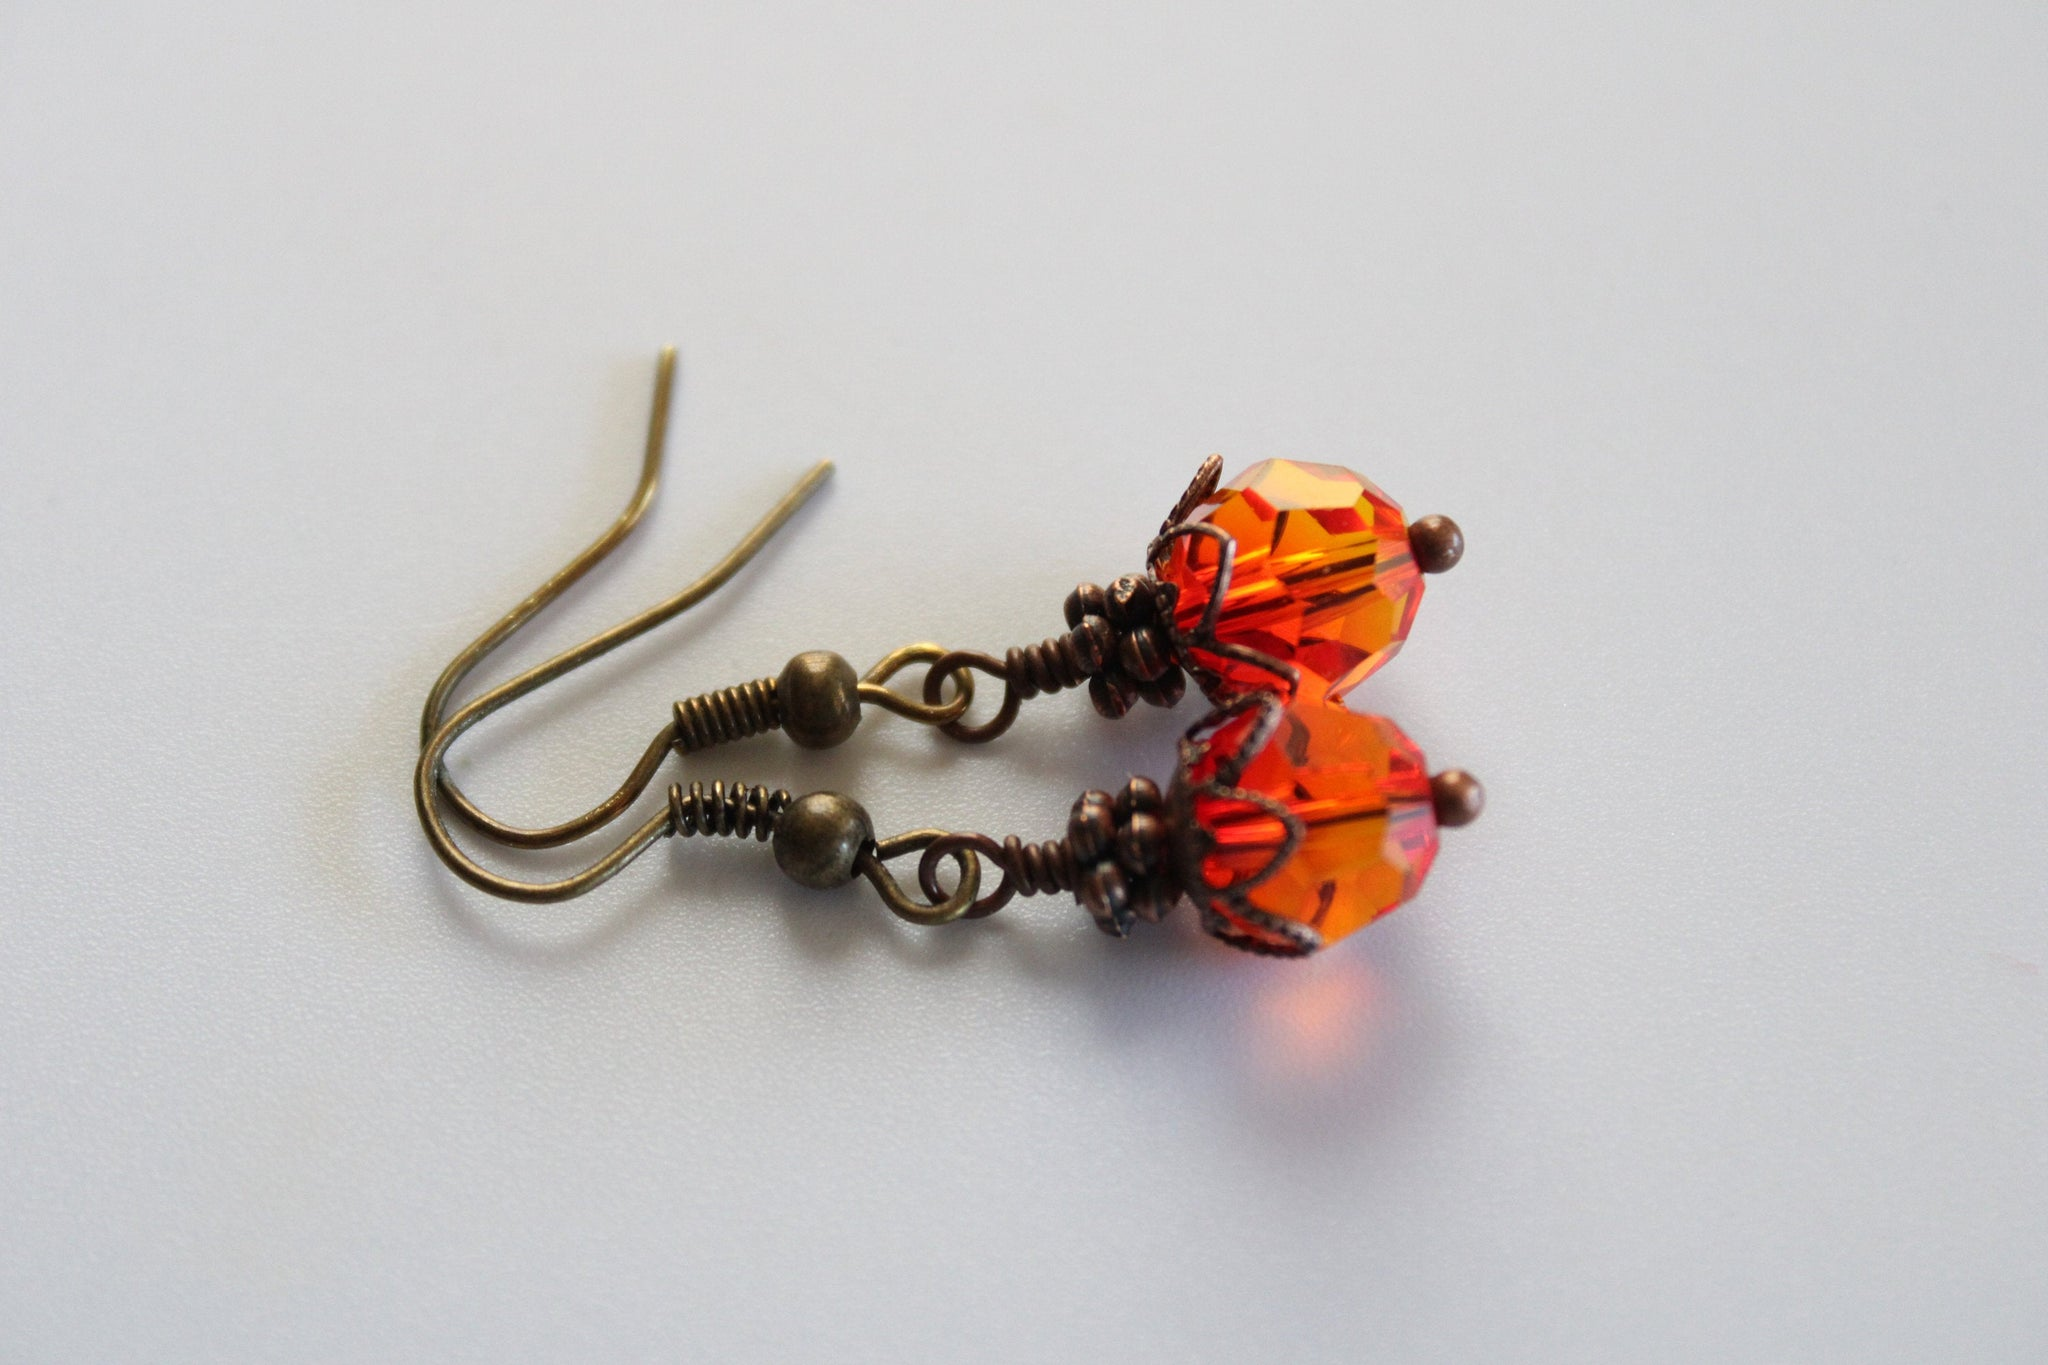 Orange Earrings, Wire Wrapped Earrings, Bright Orange Drop Earrings, Beaded Earrings, Dangle Earrings, Orange Jewelry